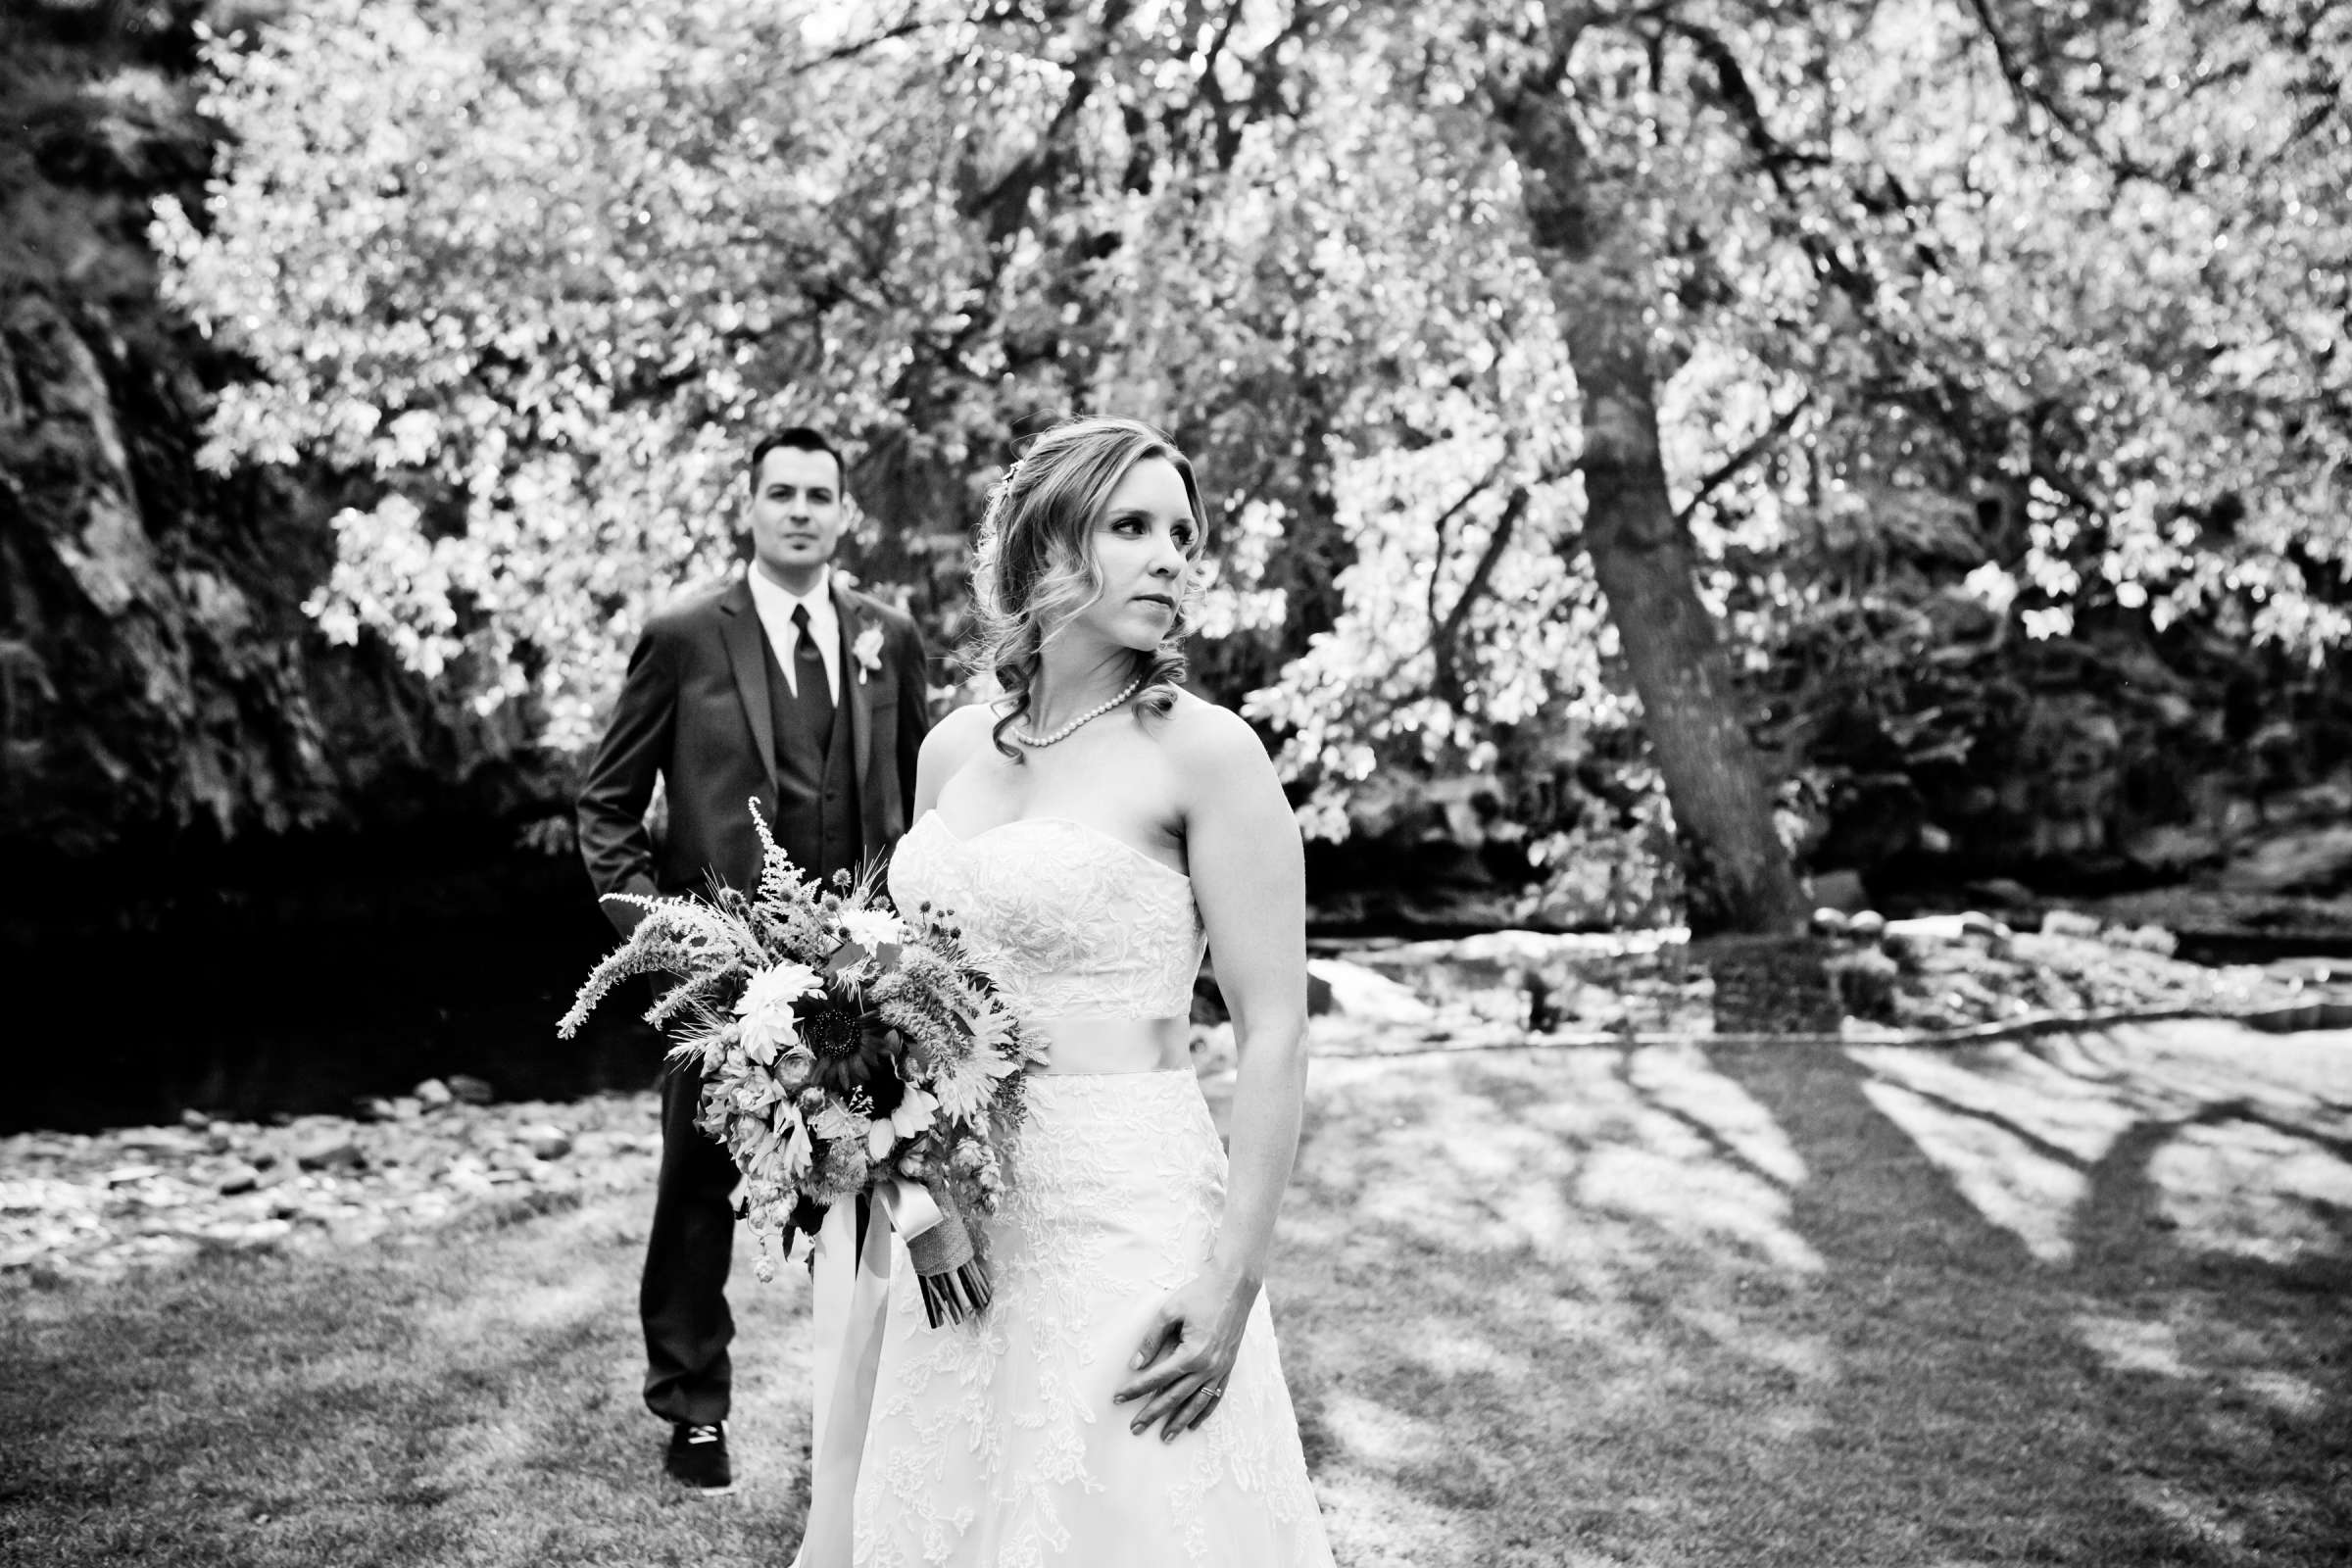 The Lyons Farmette Wedding, Tiffany and J. Travis Wedding Photo #8 by True Photography